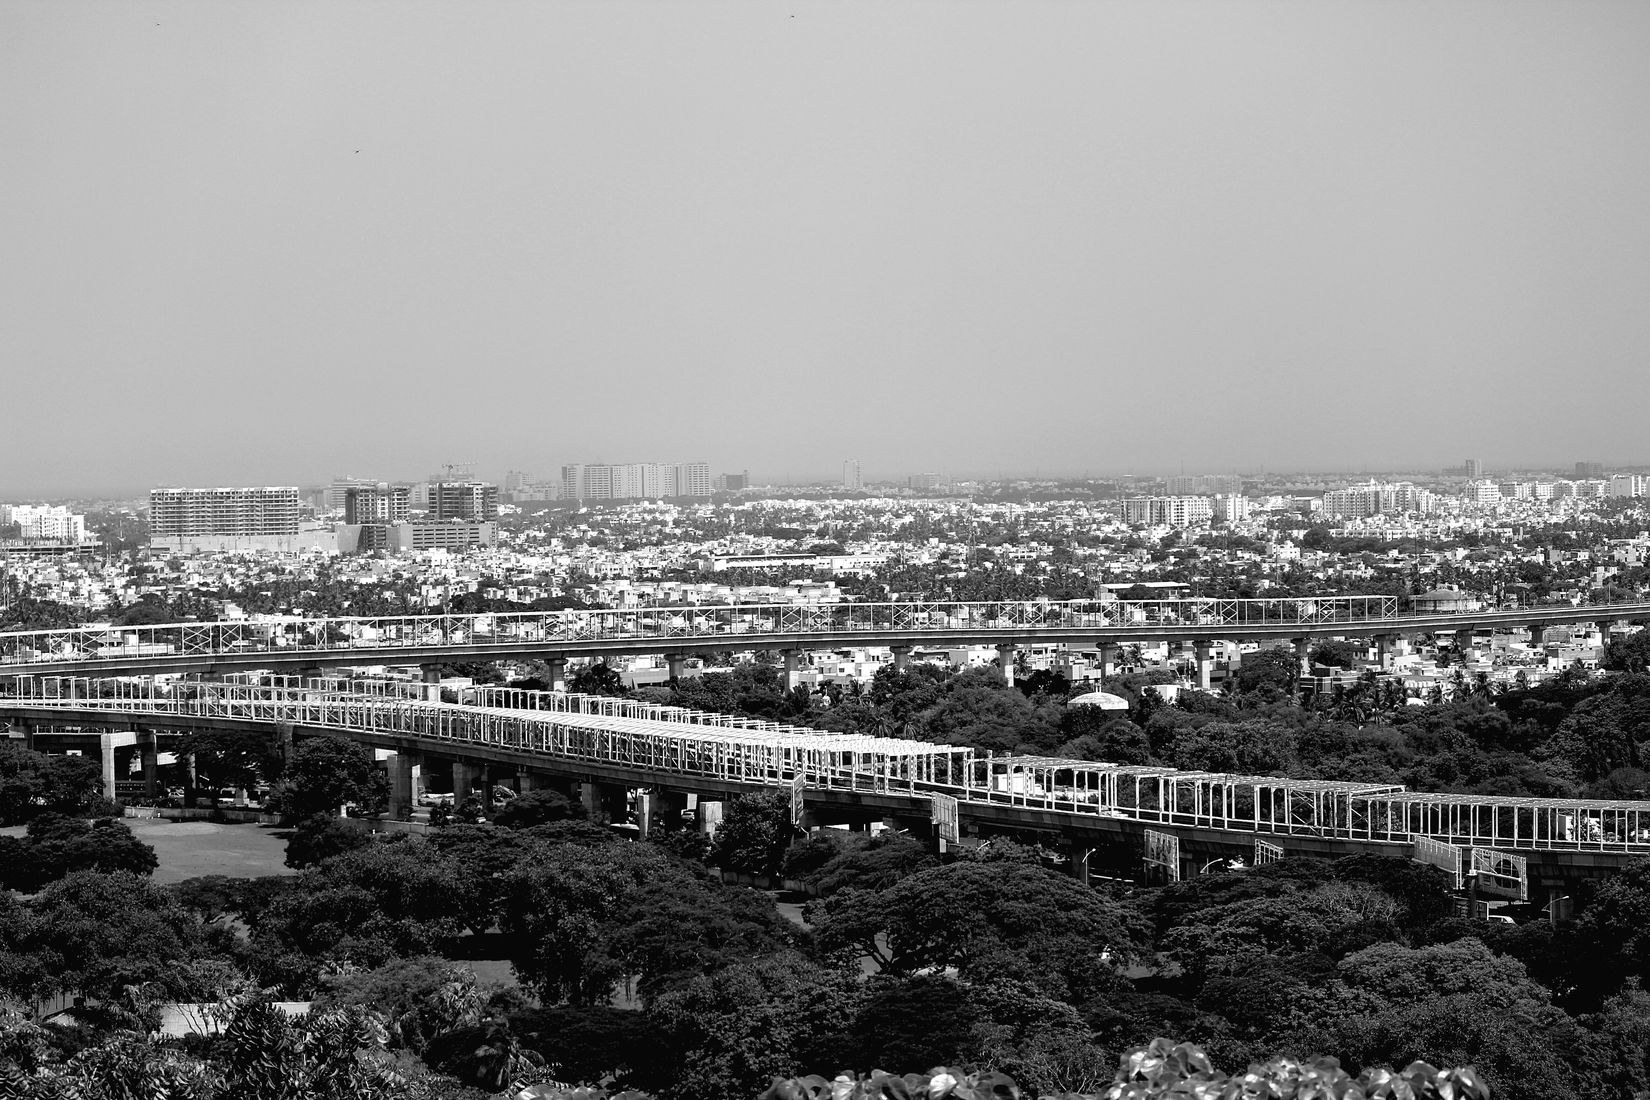 view of a part of the chennai city Cityscape Capital Cities  Chennai